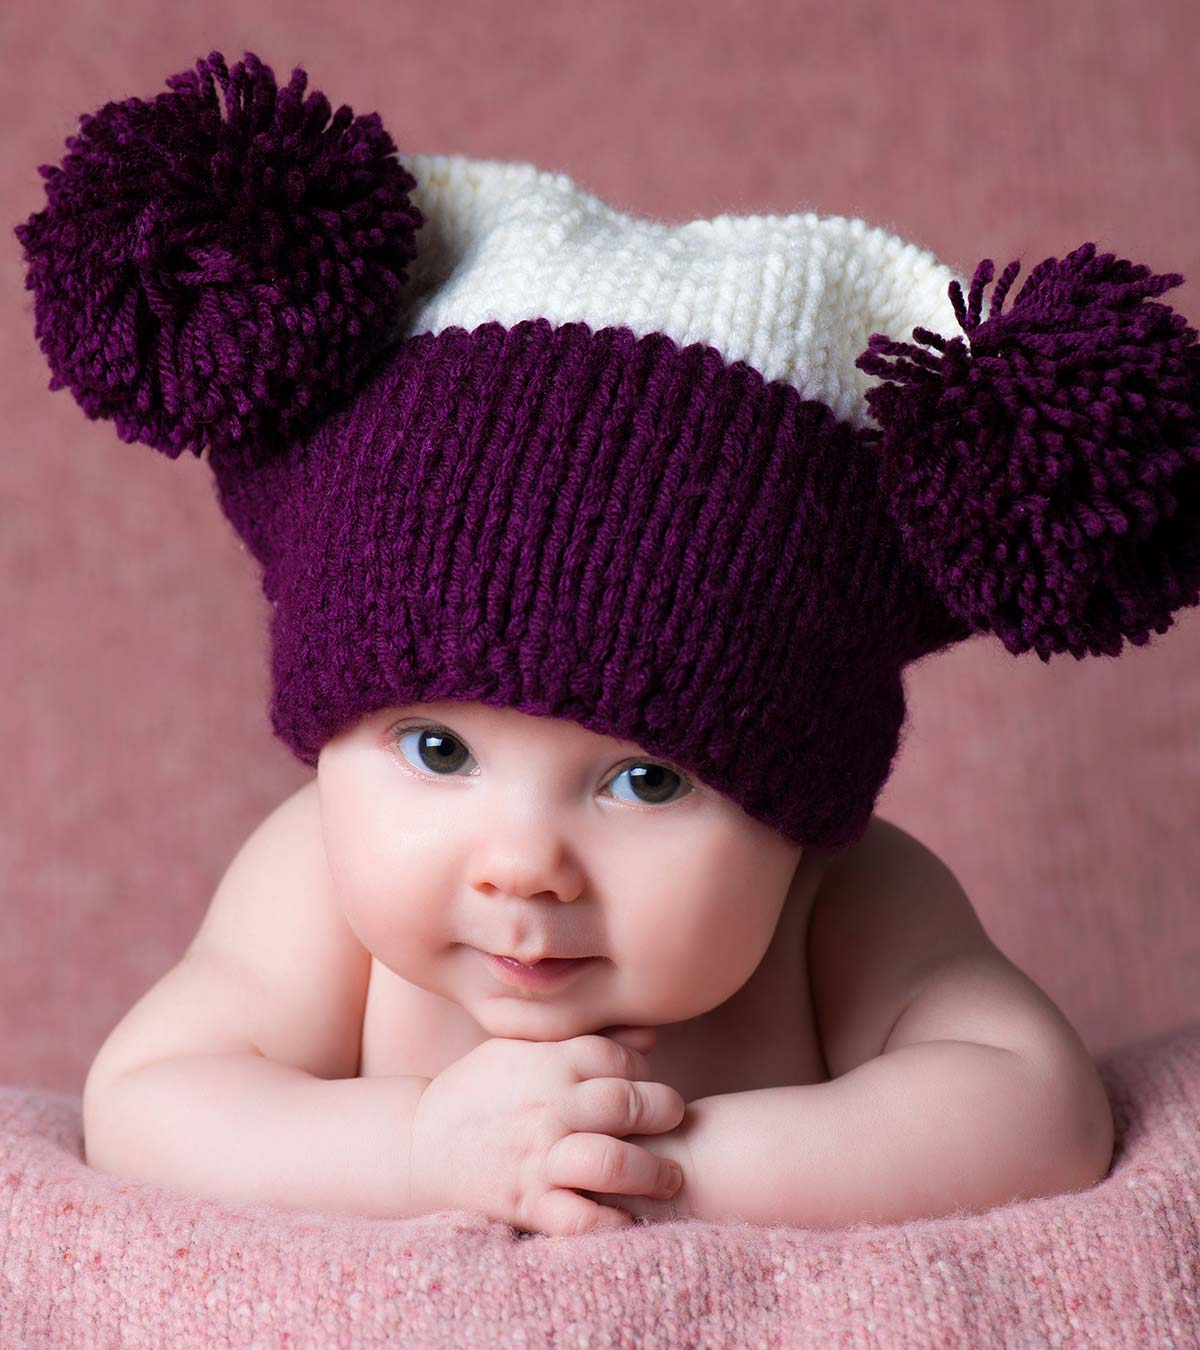 52 Baby Names That Mean Luck, Destiny, Or Fortune For Boys